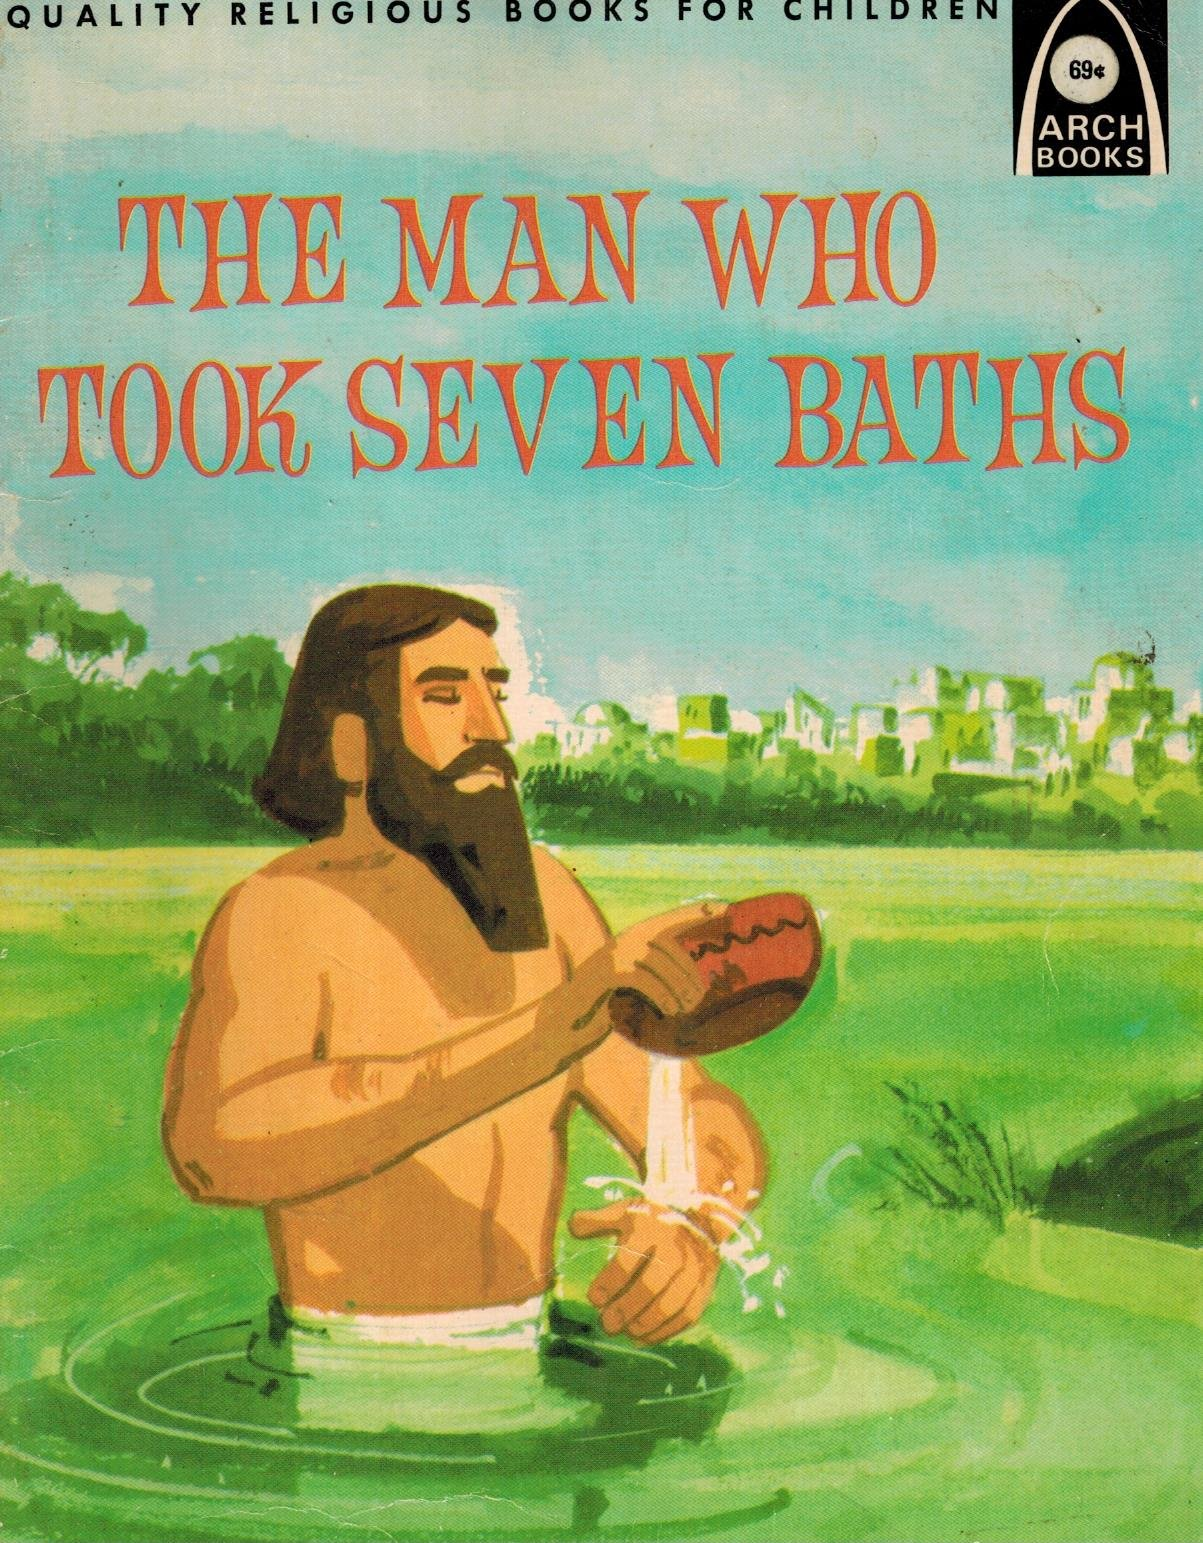 Image result for the man who took seven baths